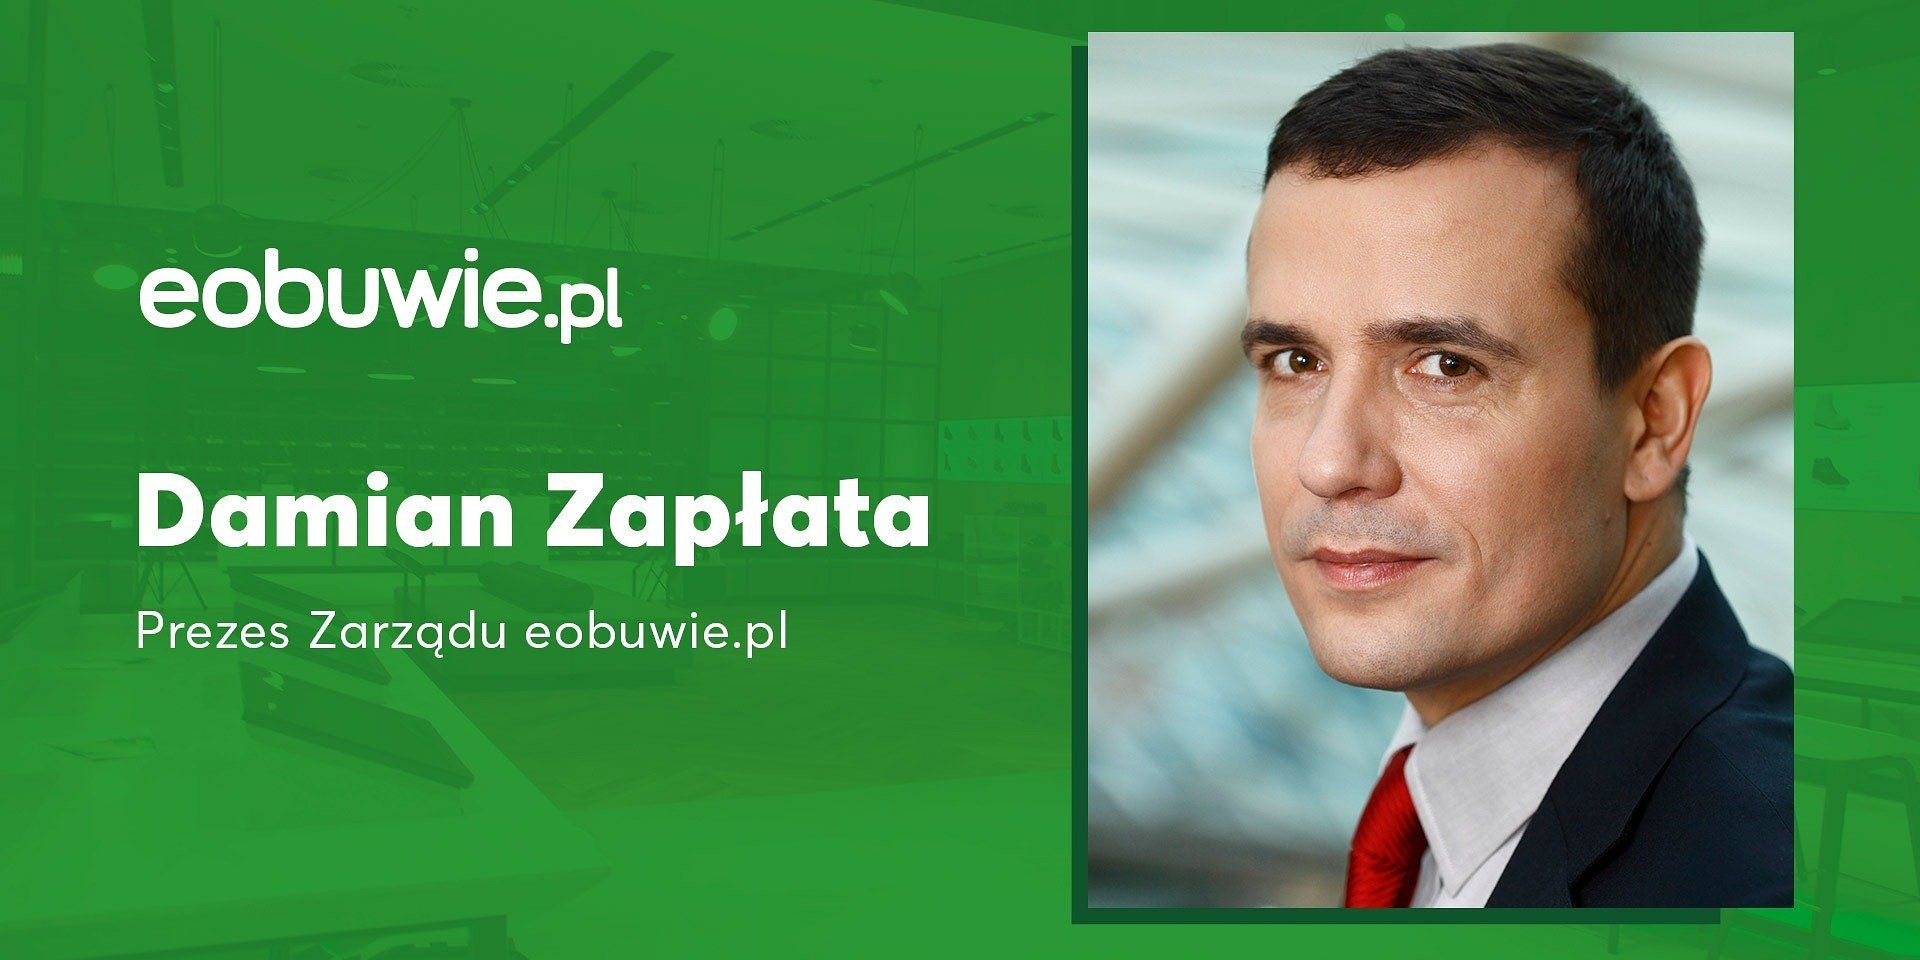 Damian Zaplata leaves Allegro and joinseobuwie.pl